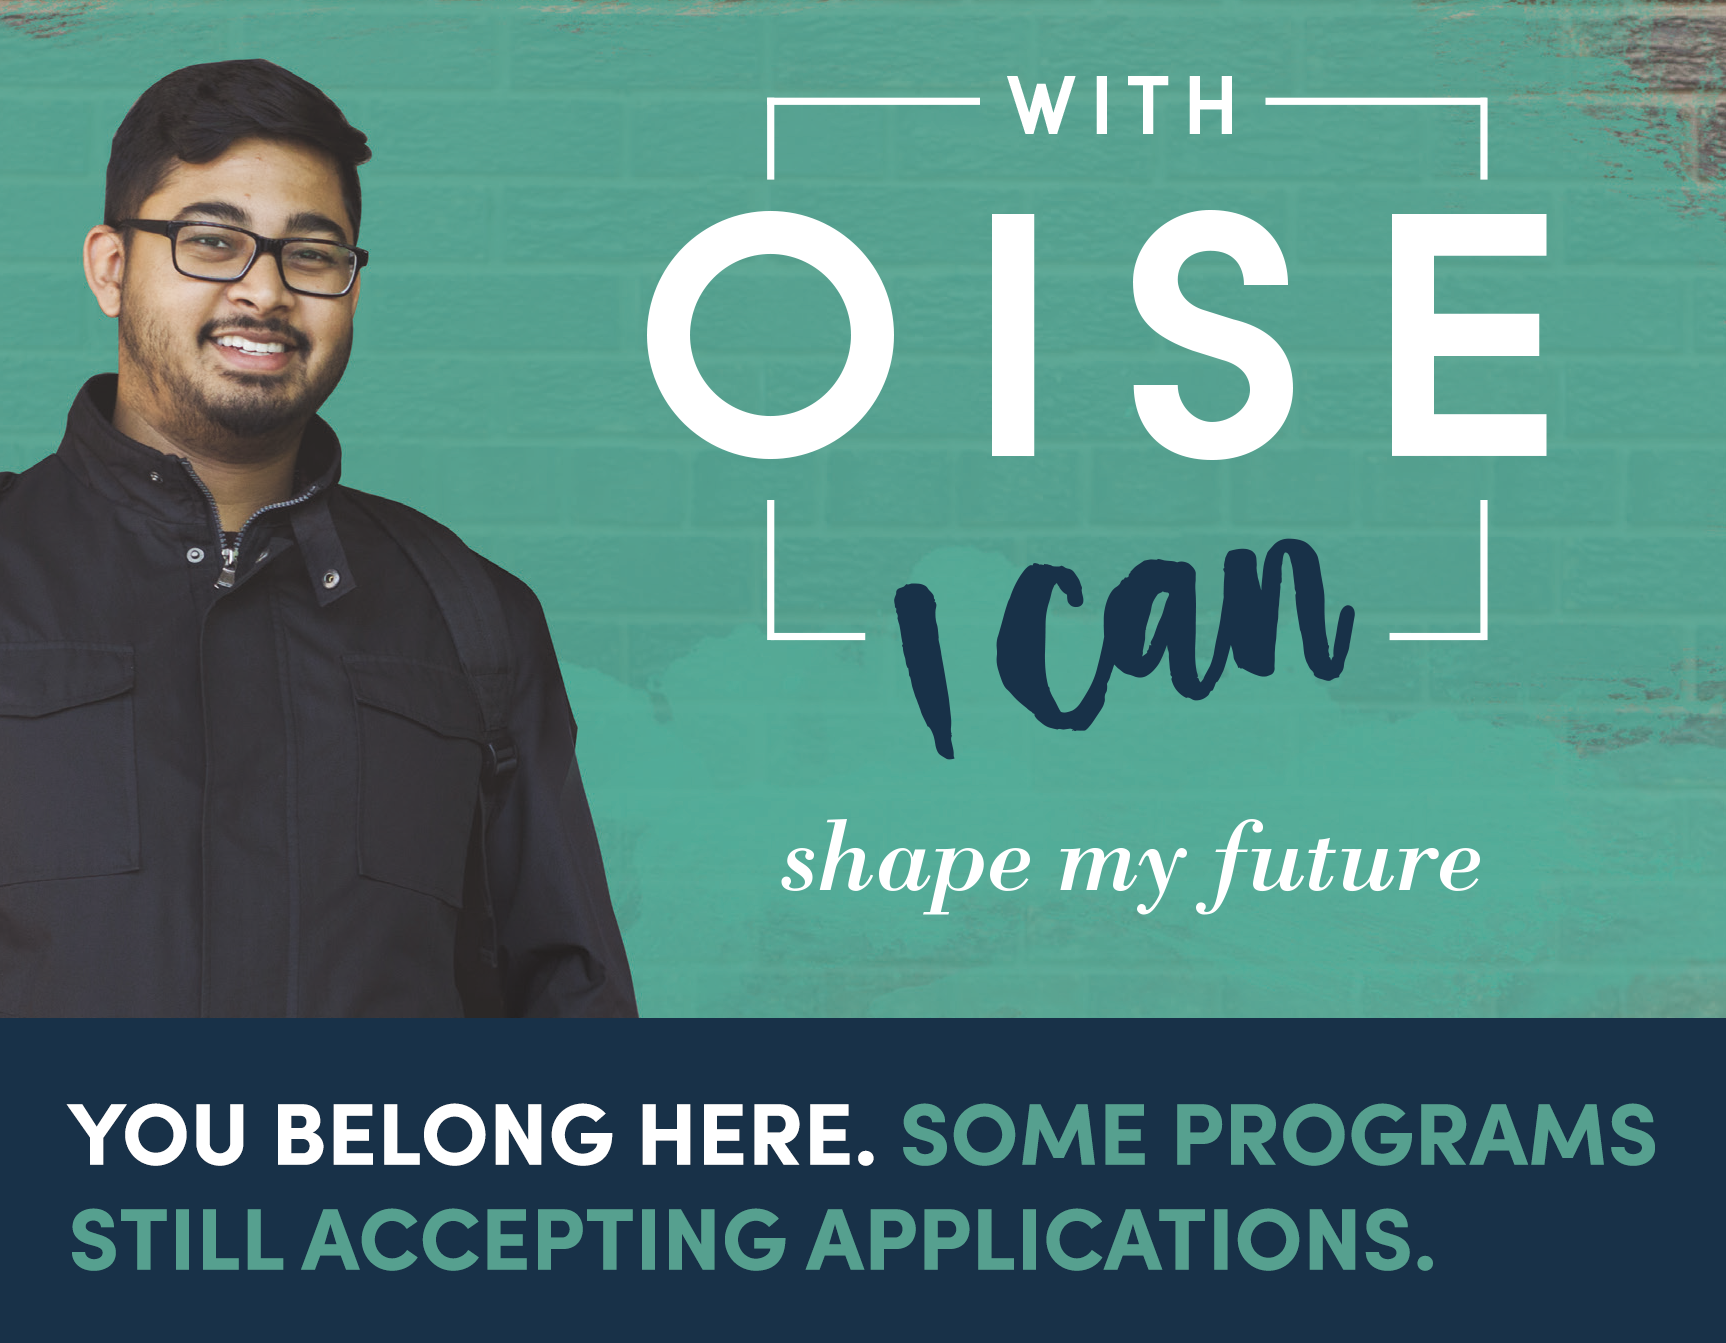 Some programs are still accepting applications. Apply today!